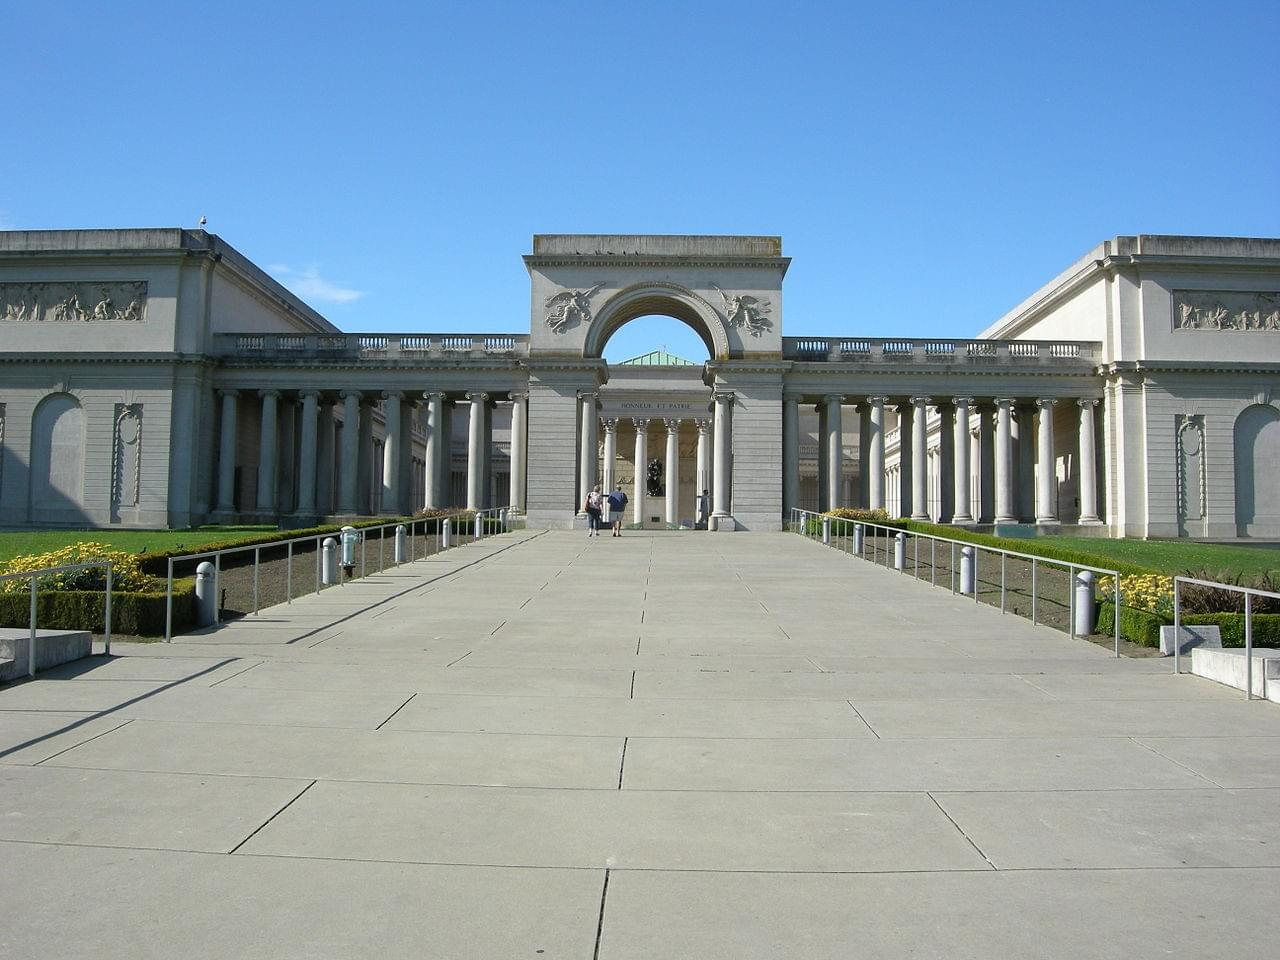 The California Palace of the Legion of Honor